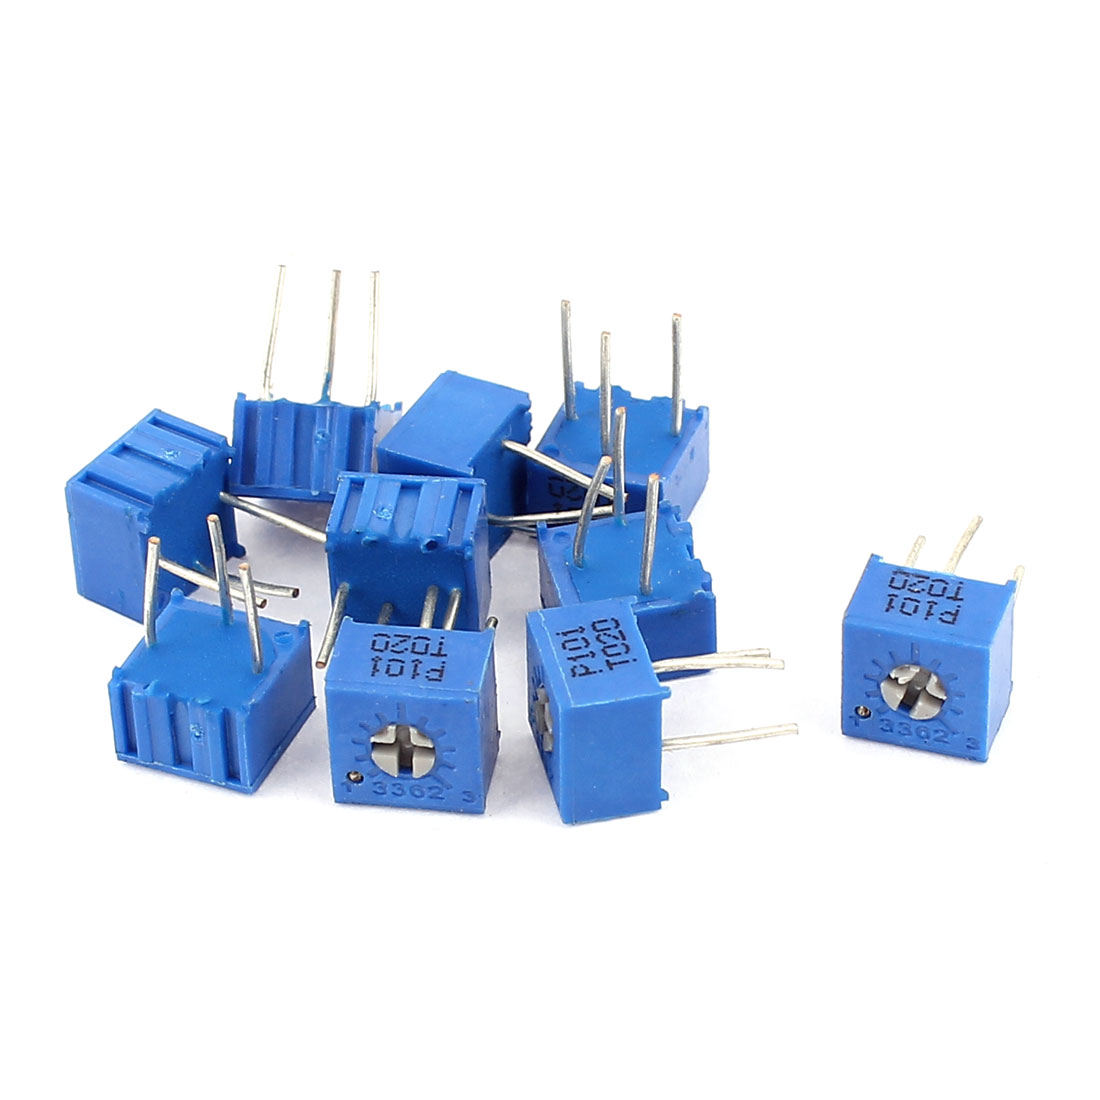 10Pcs Adjustable Potentiometer Trimmer Variable Resistor 3362P-101